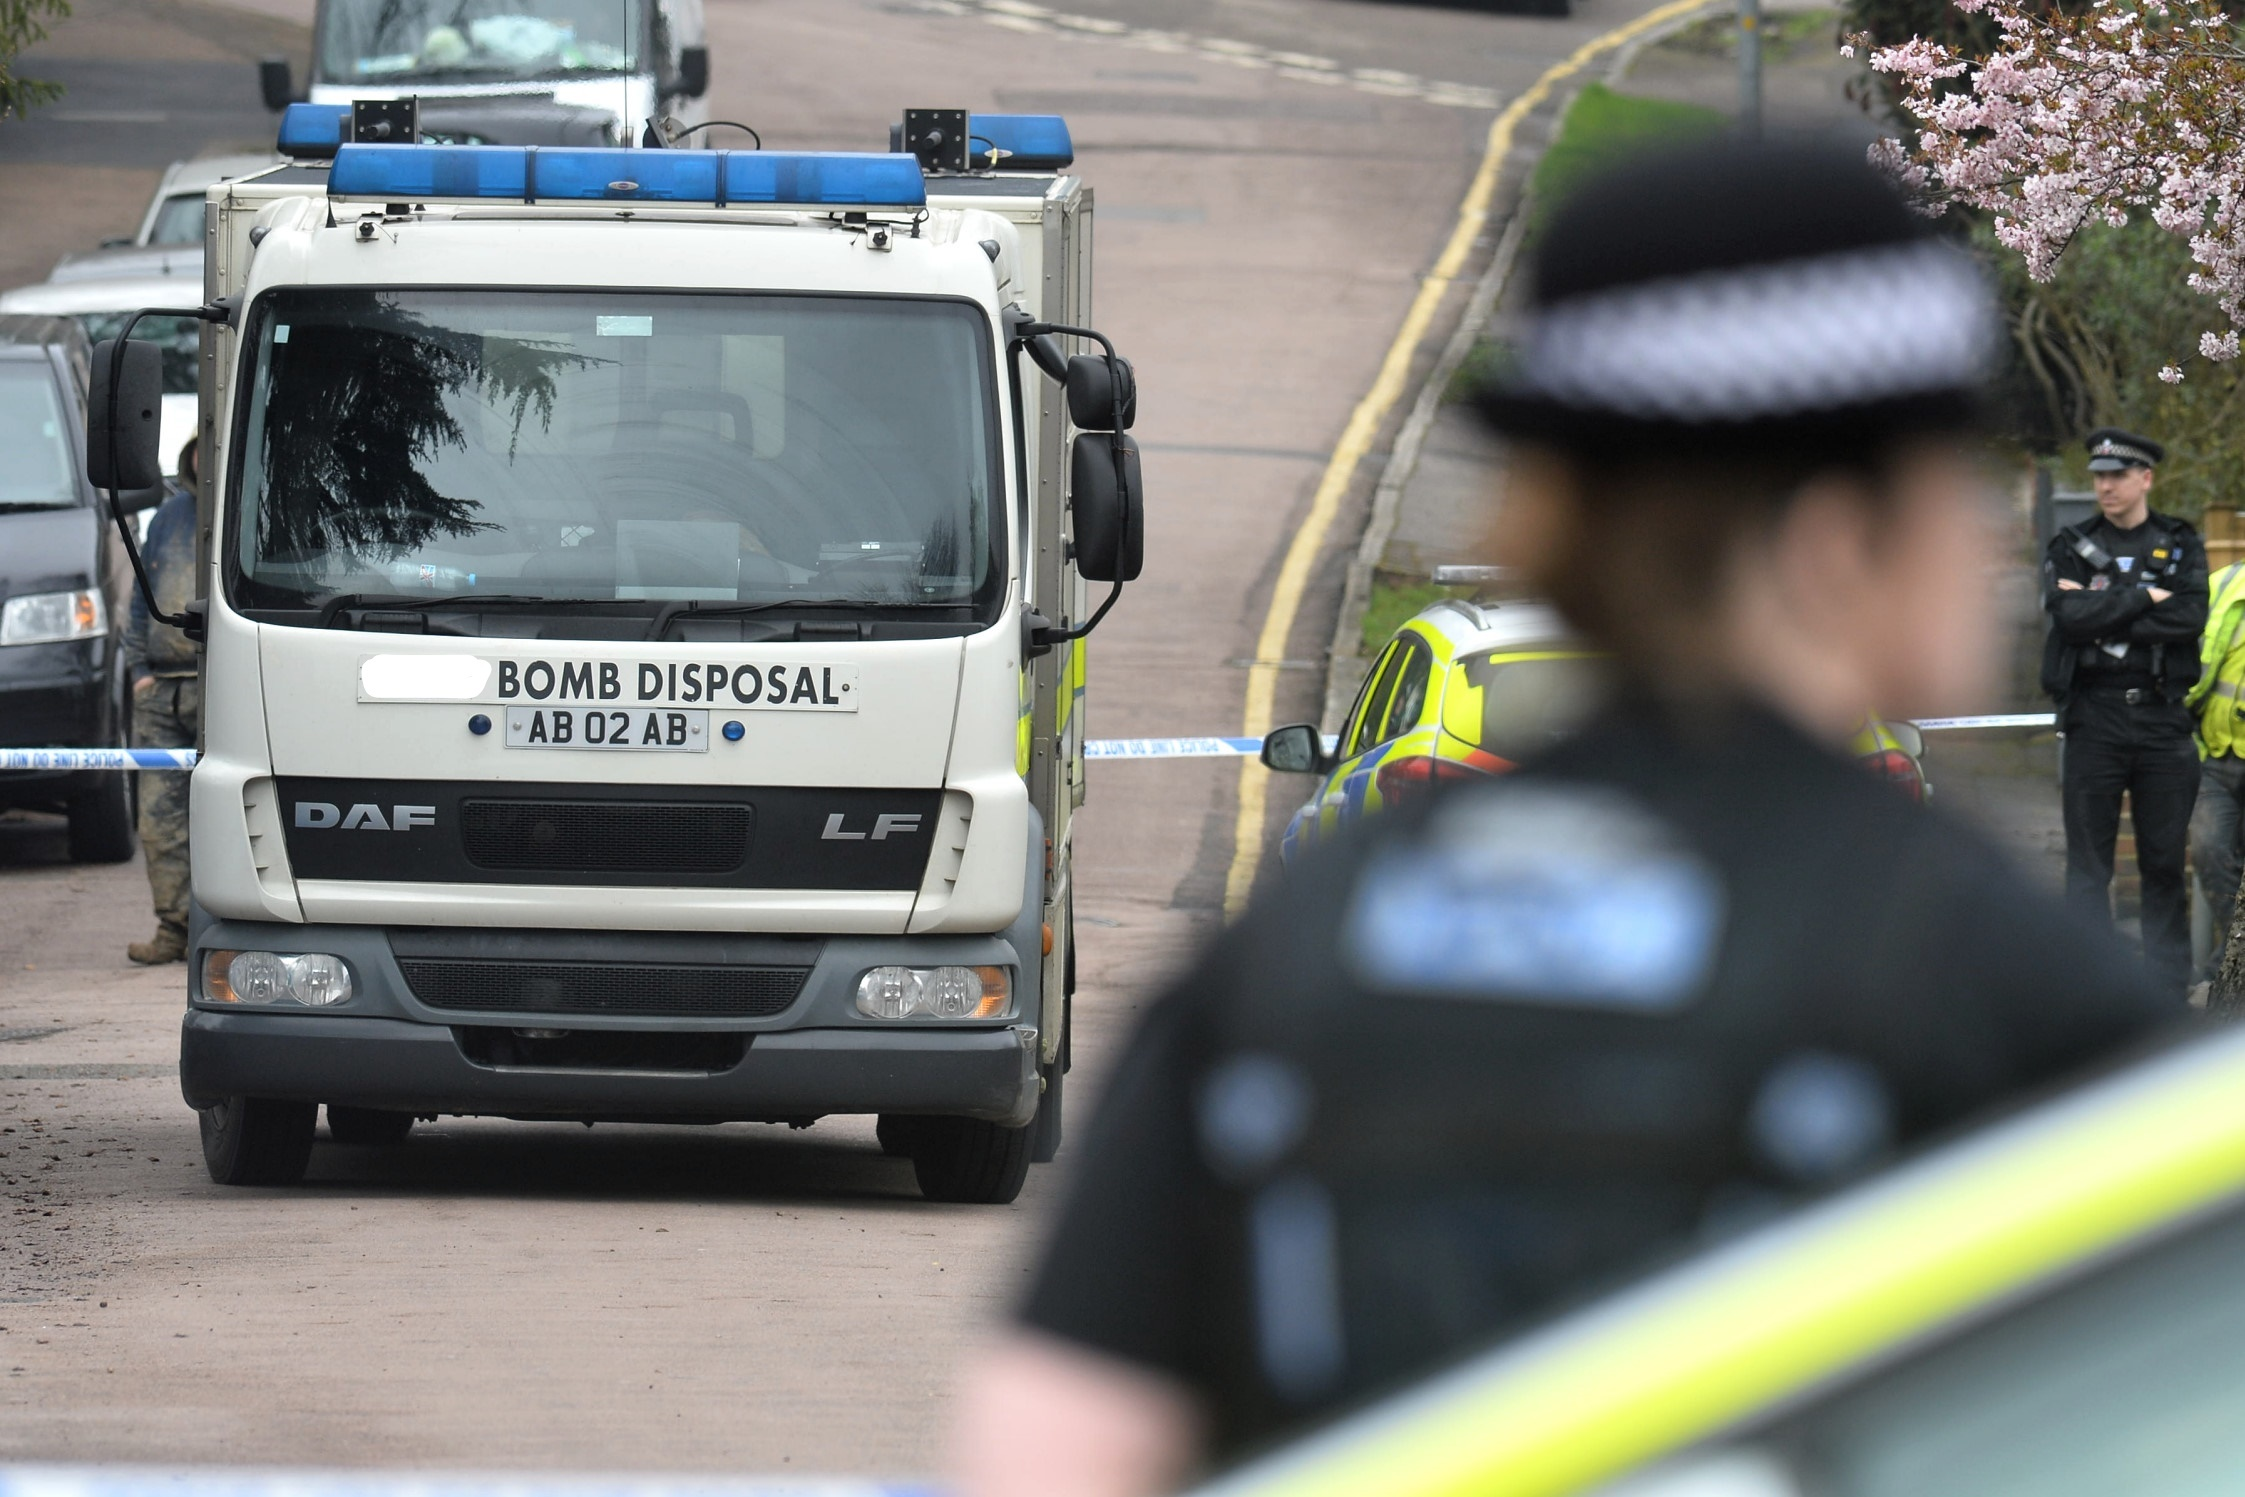 Bomb disposal called to Abbots home